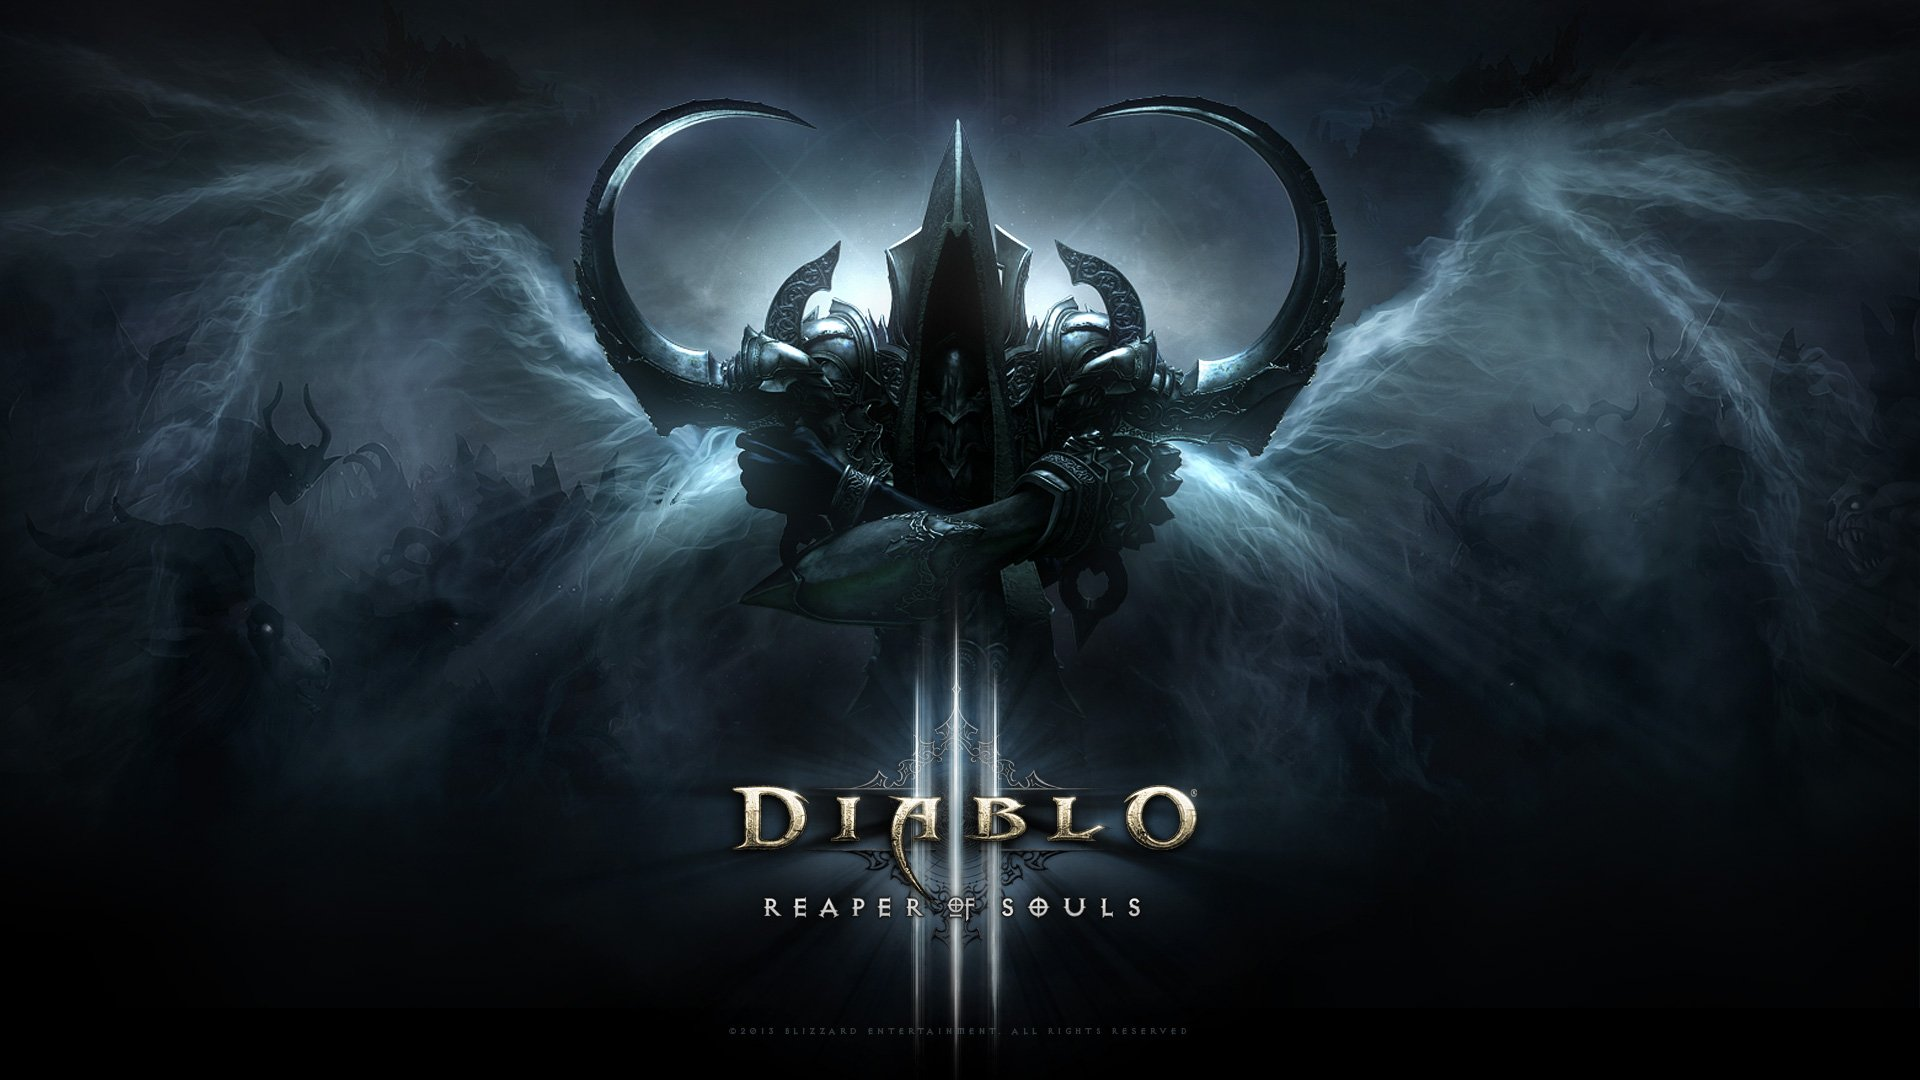 Diablo III: Reaper of Souls Release Date - March 25, 2014